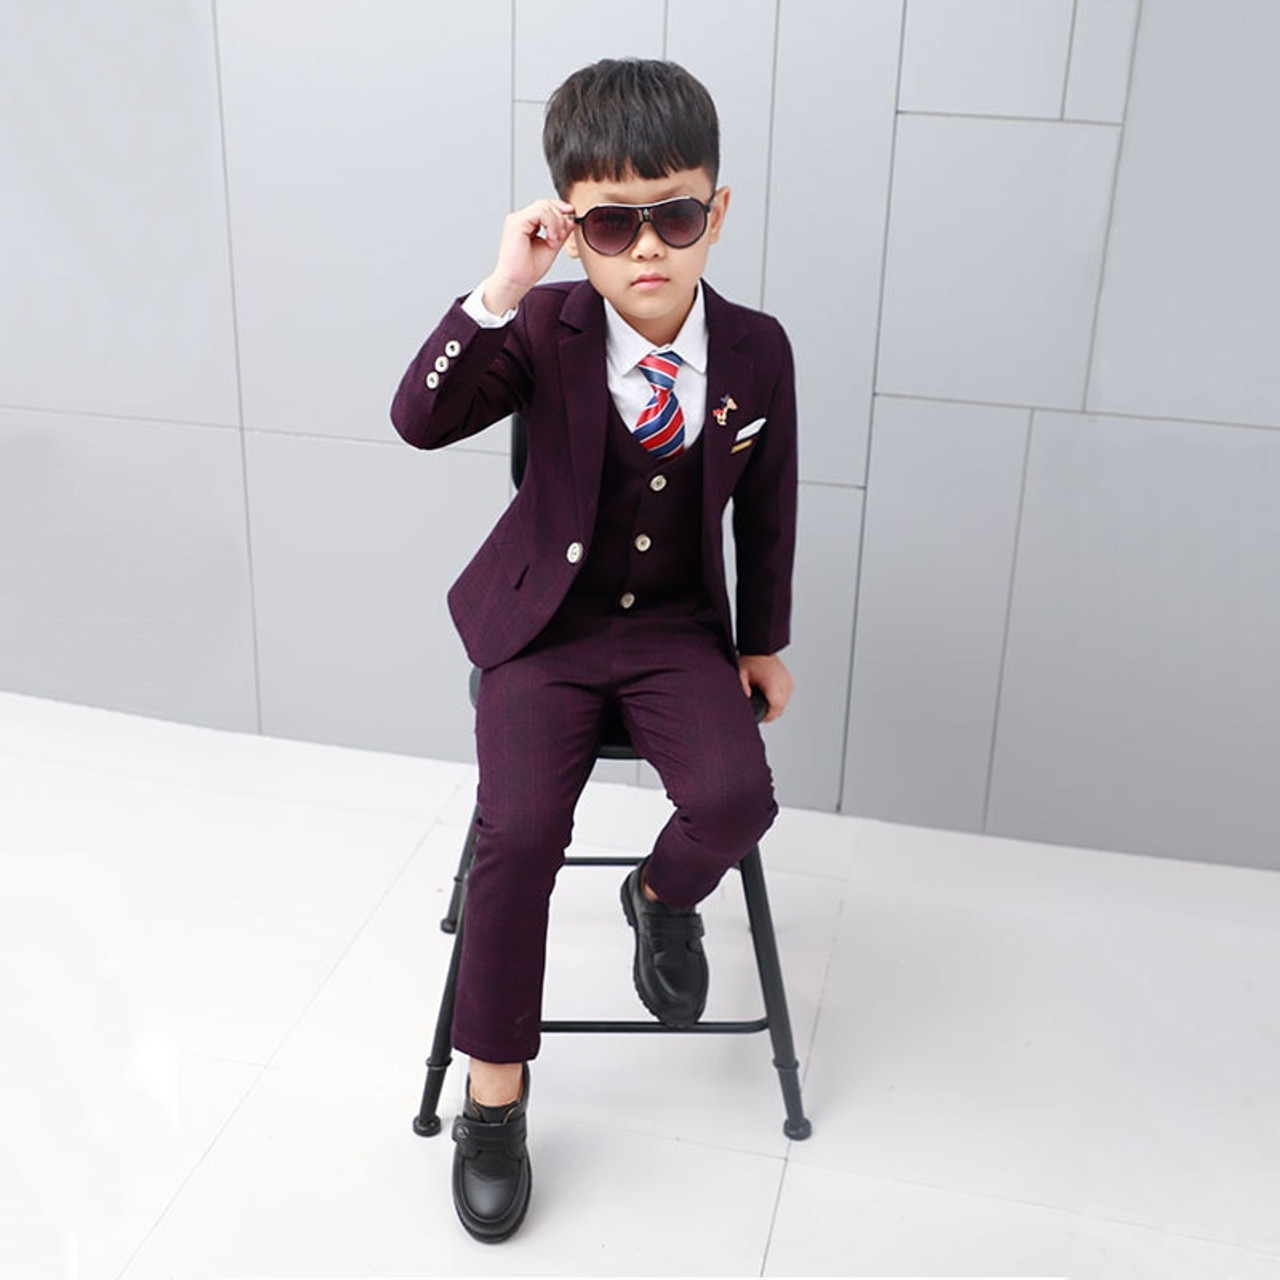 c3862397916d1 ActhInK New Boys Winter Suit 5Pcs Kids Wedding Blazer Suit Boys Shirts Vest  Stylish Clothing Set Baby Boys Wedding Clothes, C343